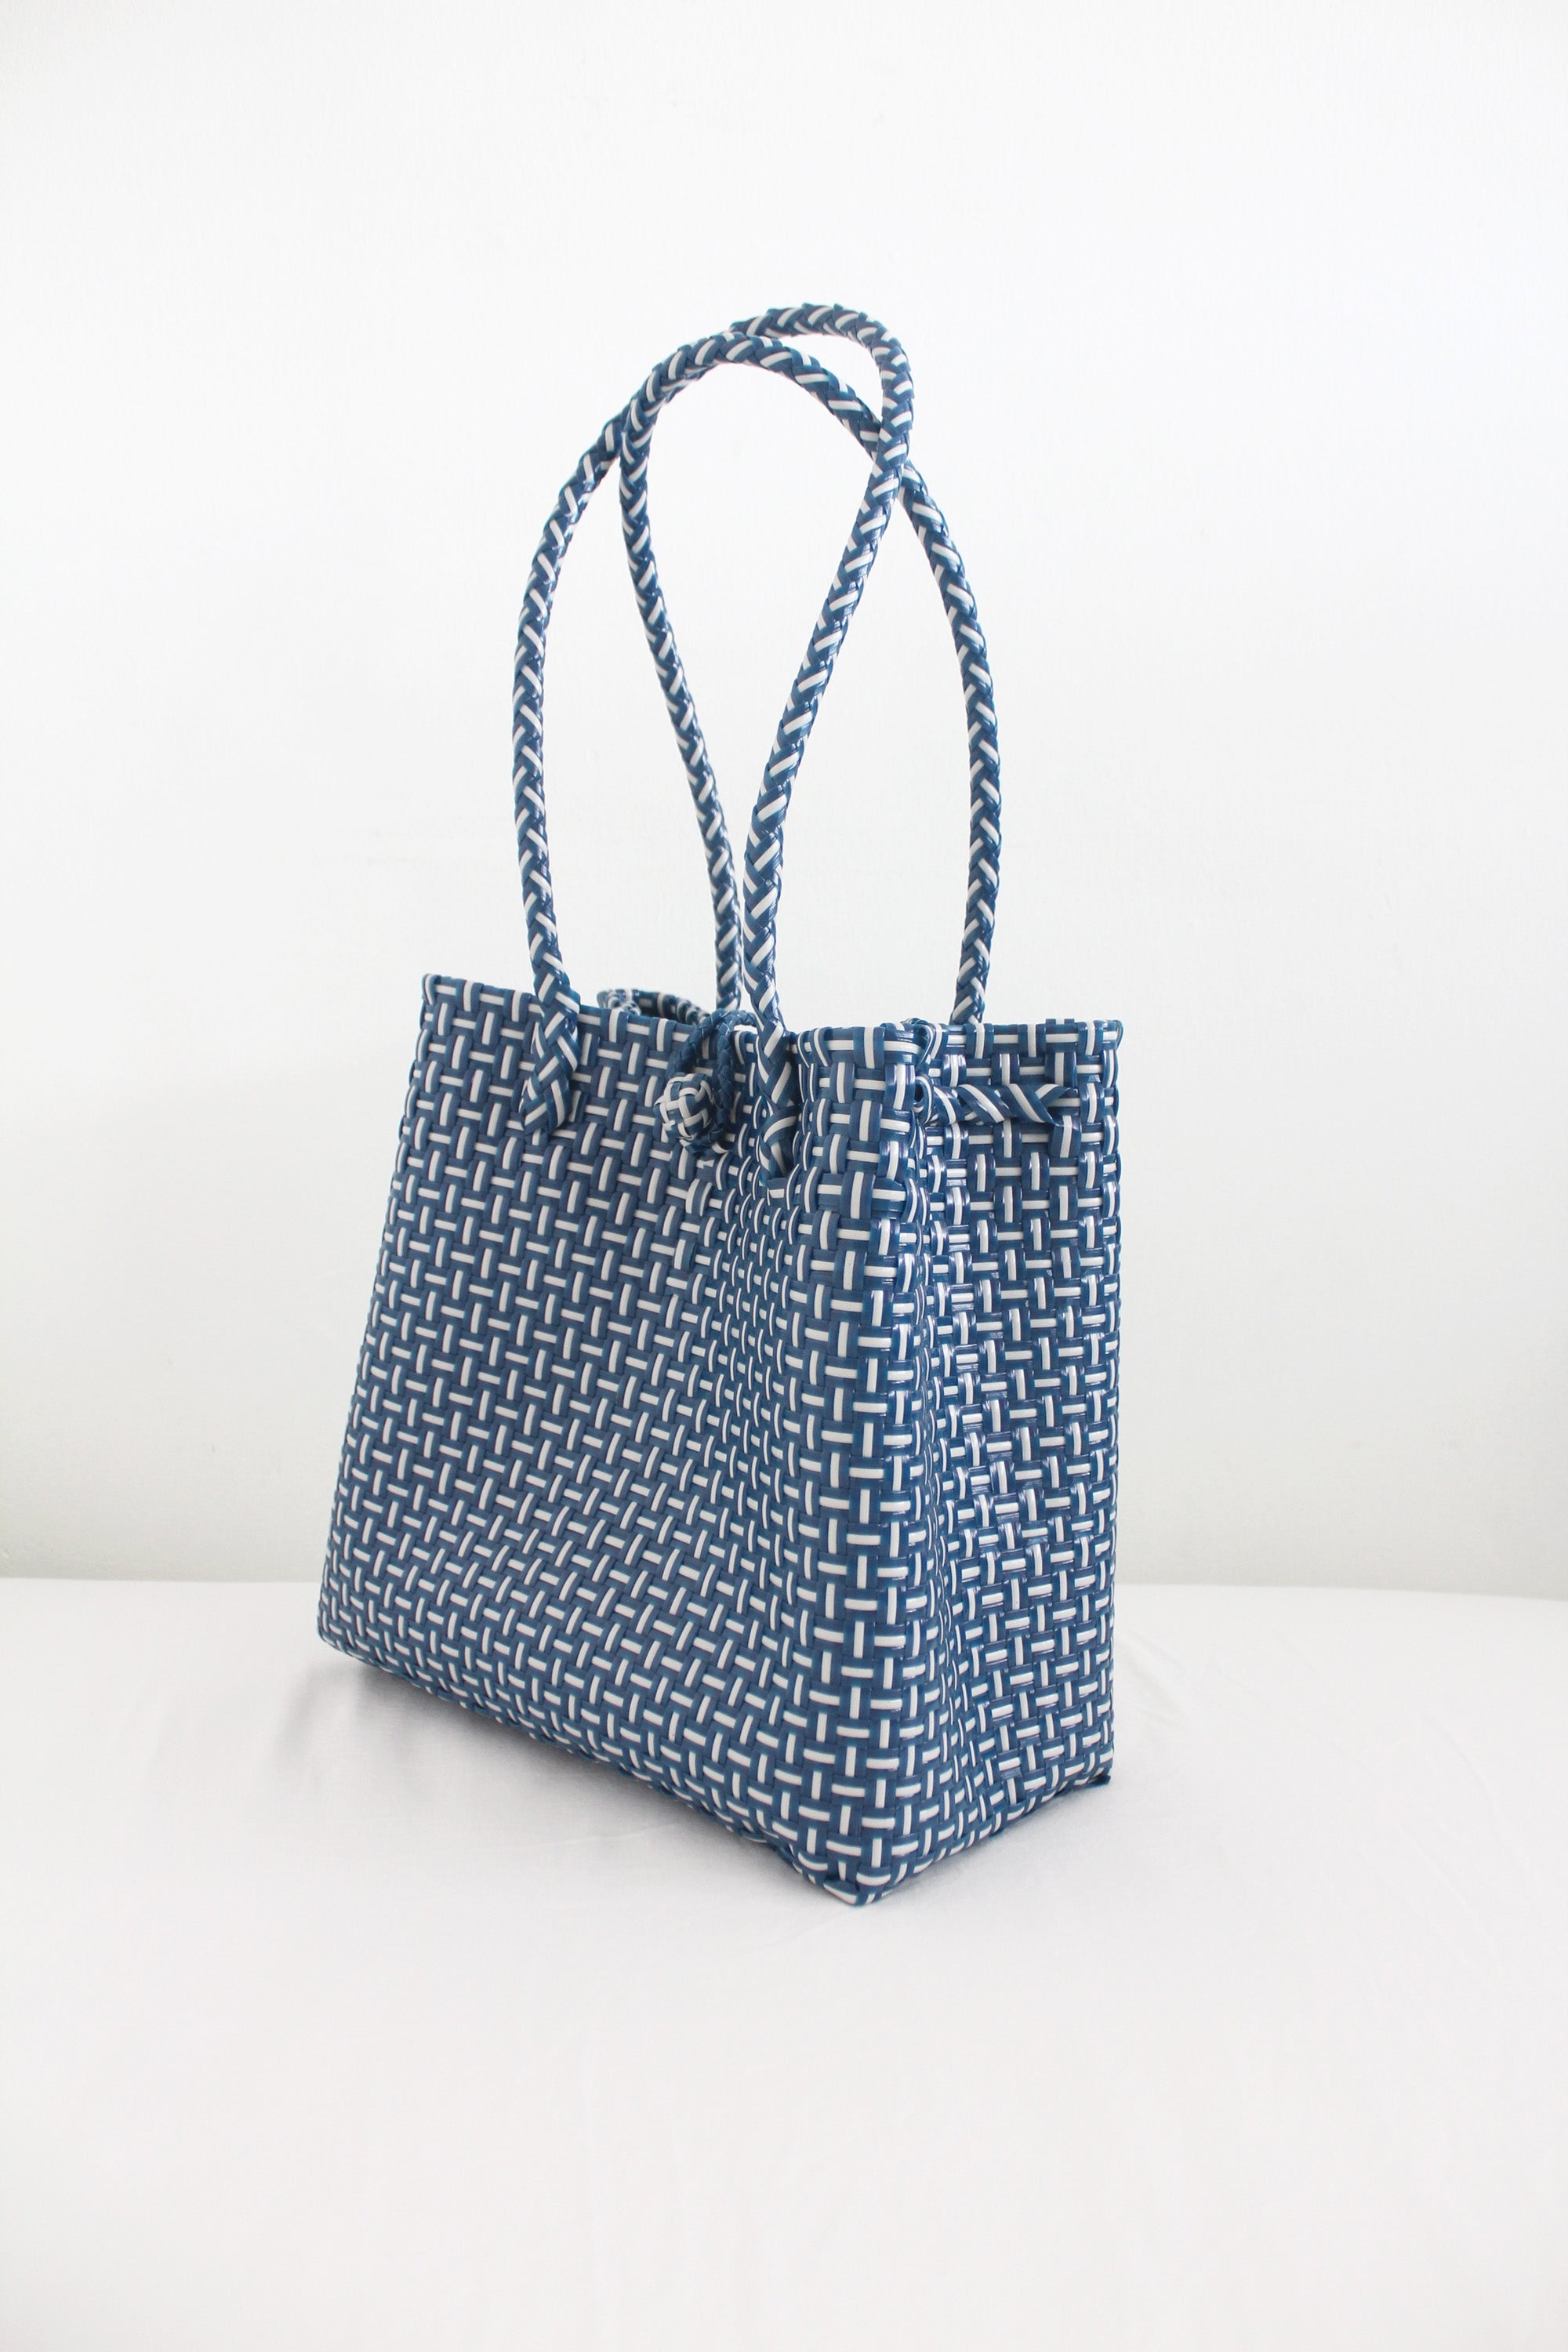 Philo Bag in Blue